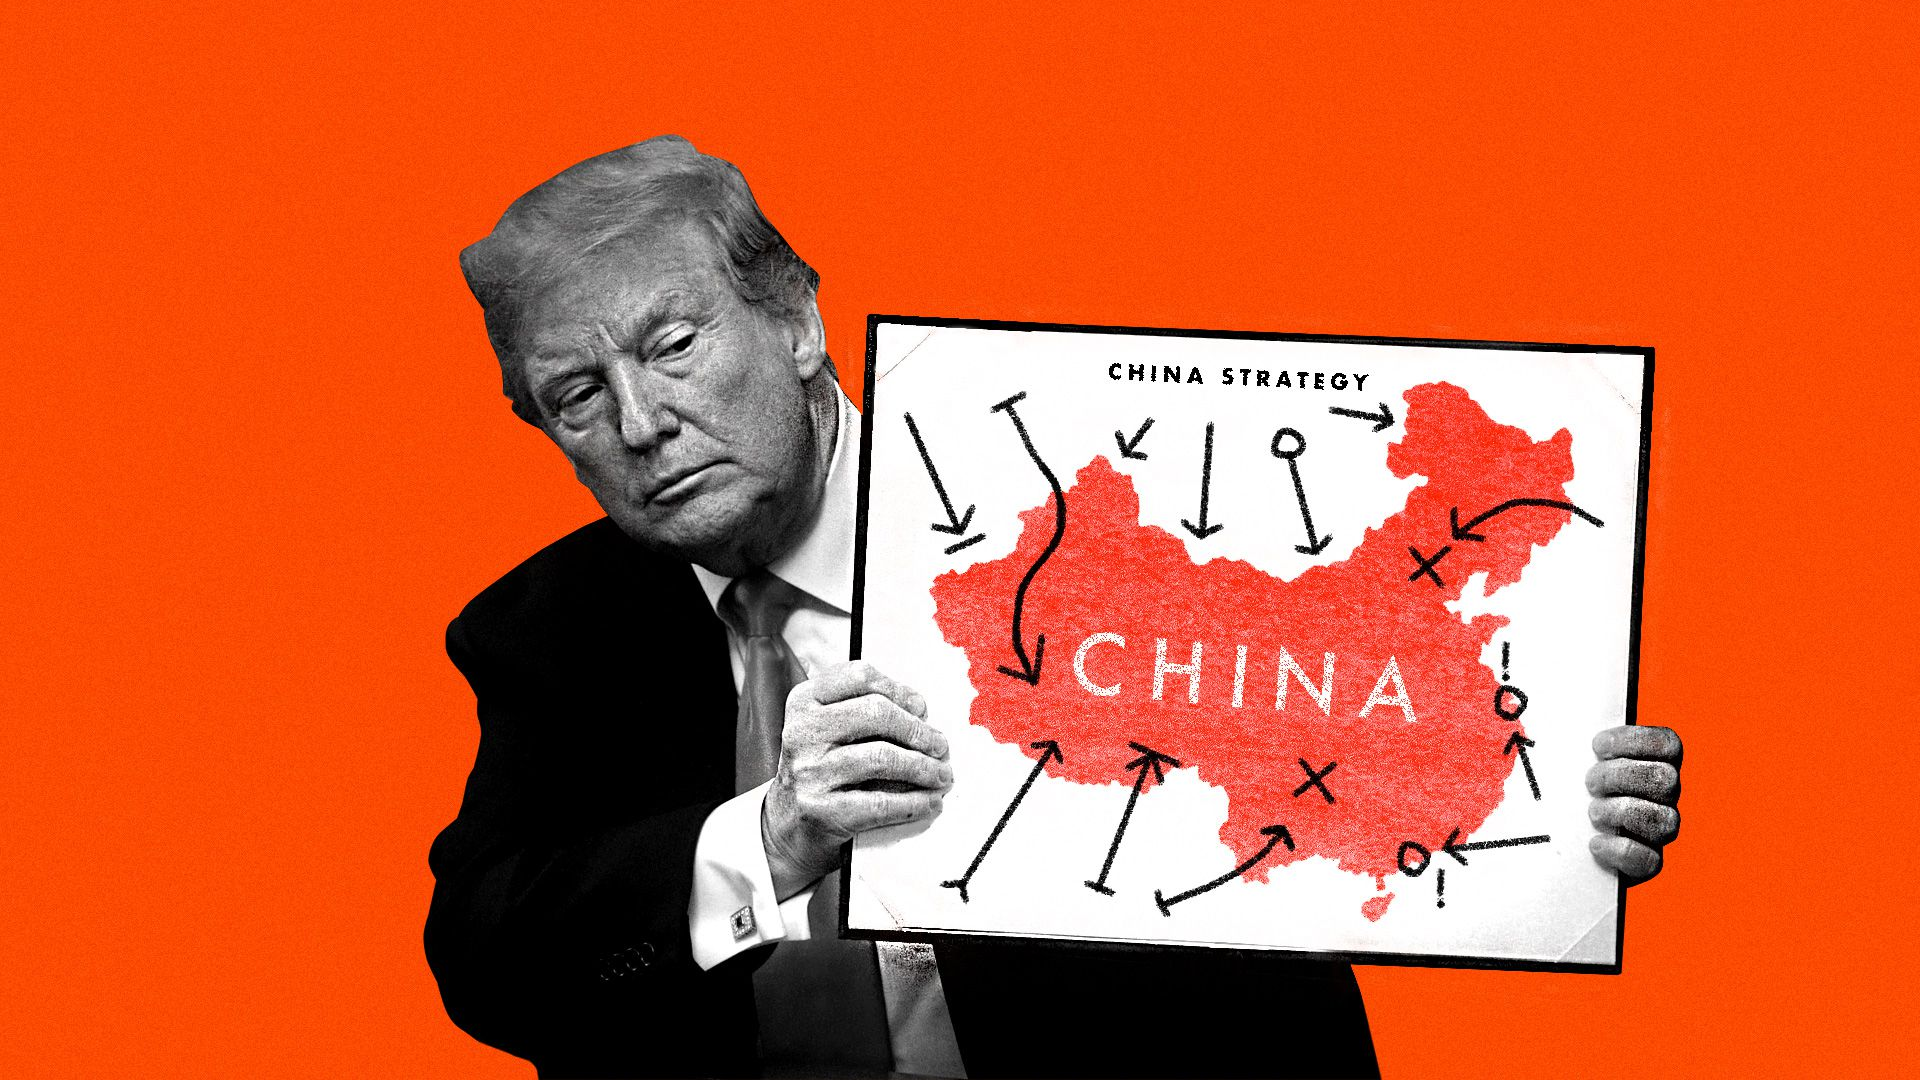 Trump holding up a confusing map of China